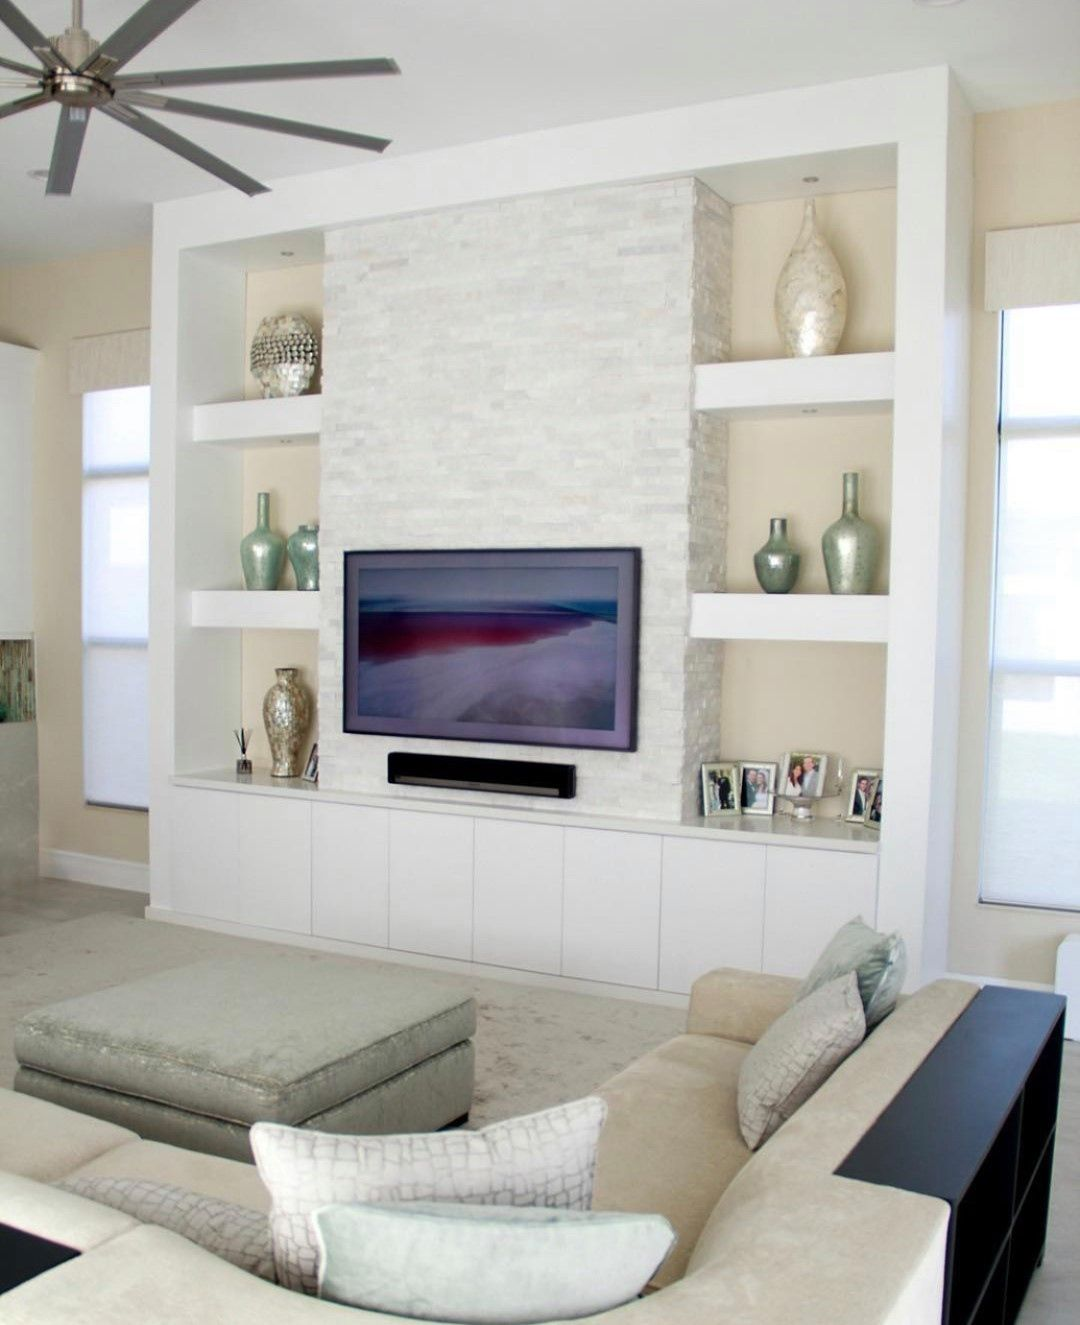 Modern And Beautiful Living Room Units In 2021 Living Room Entertainment Center Built In Entertainment Center Living Room Units